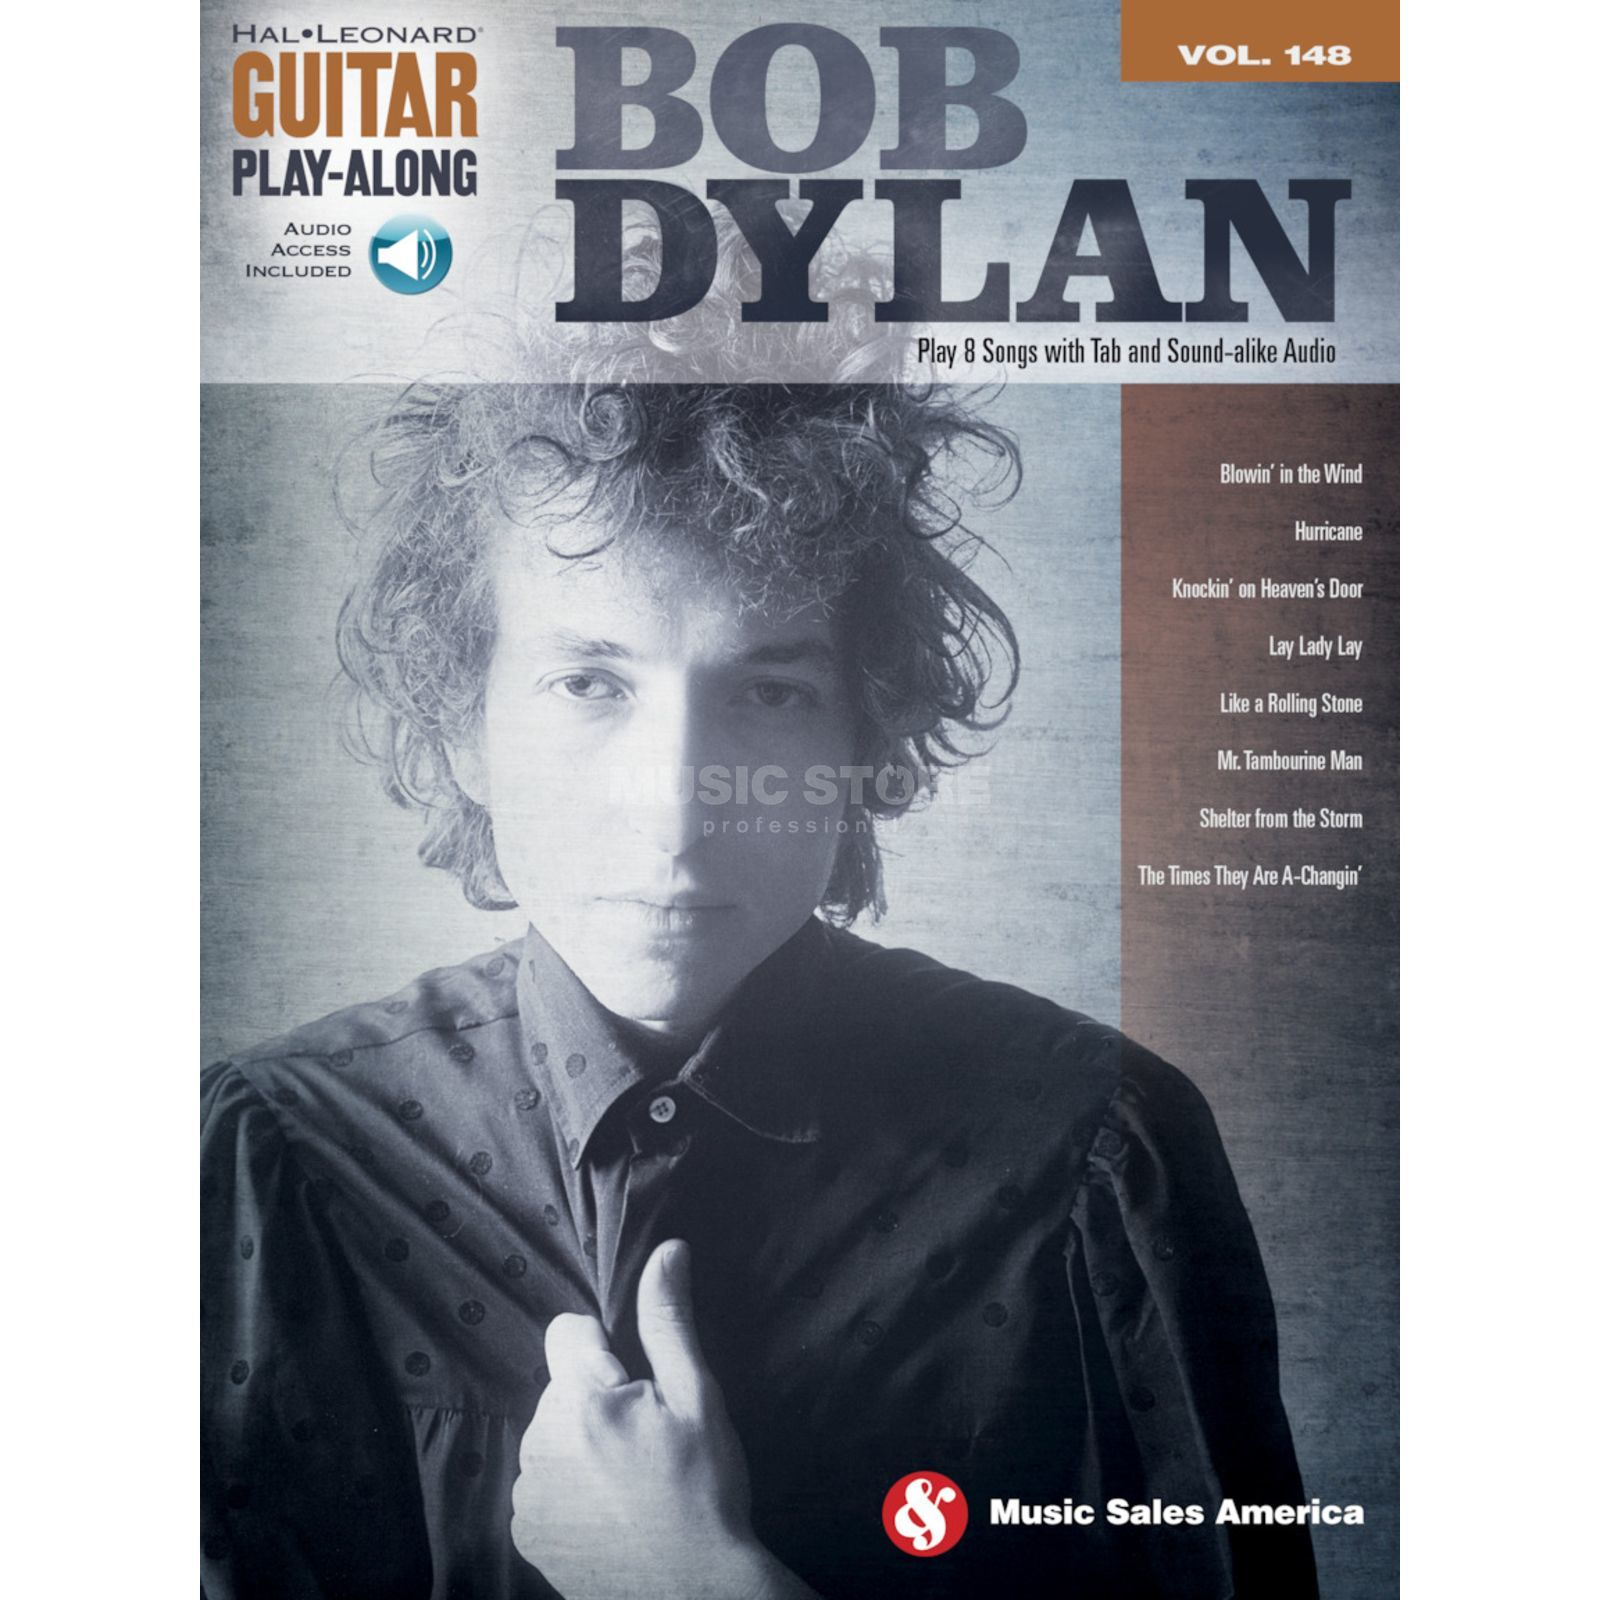 Hal Leonard Guitar Play-Along: Bob Dylan Vol. 148, TAB und CD Produktbillede